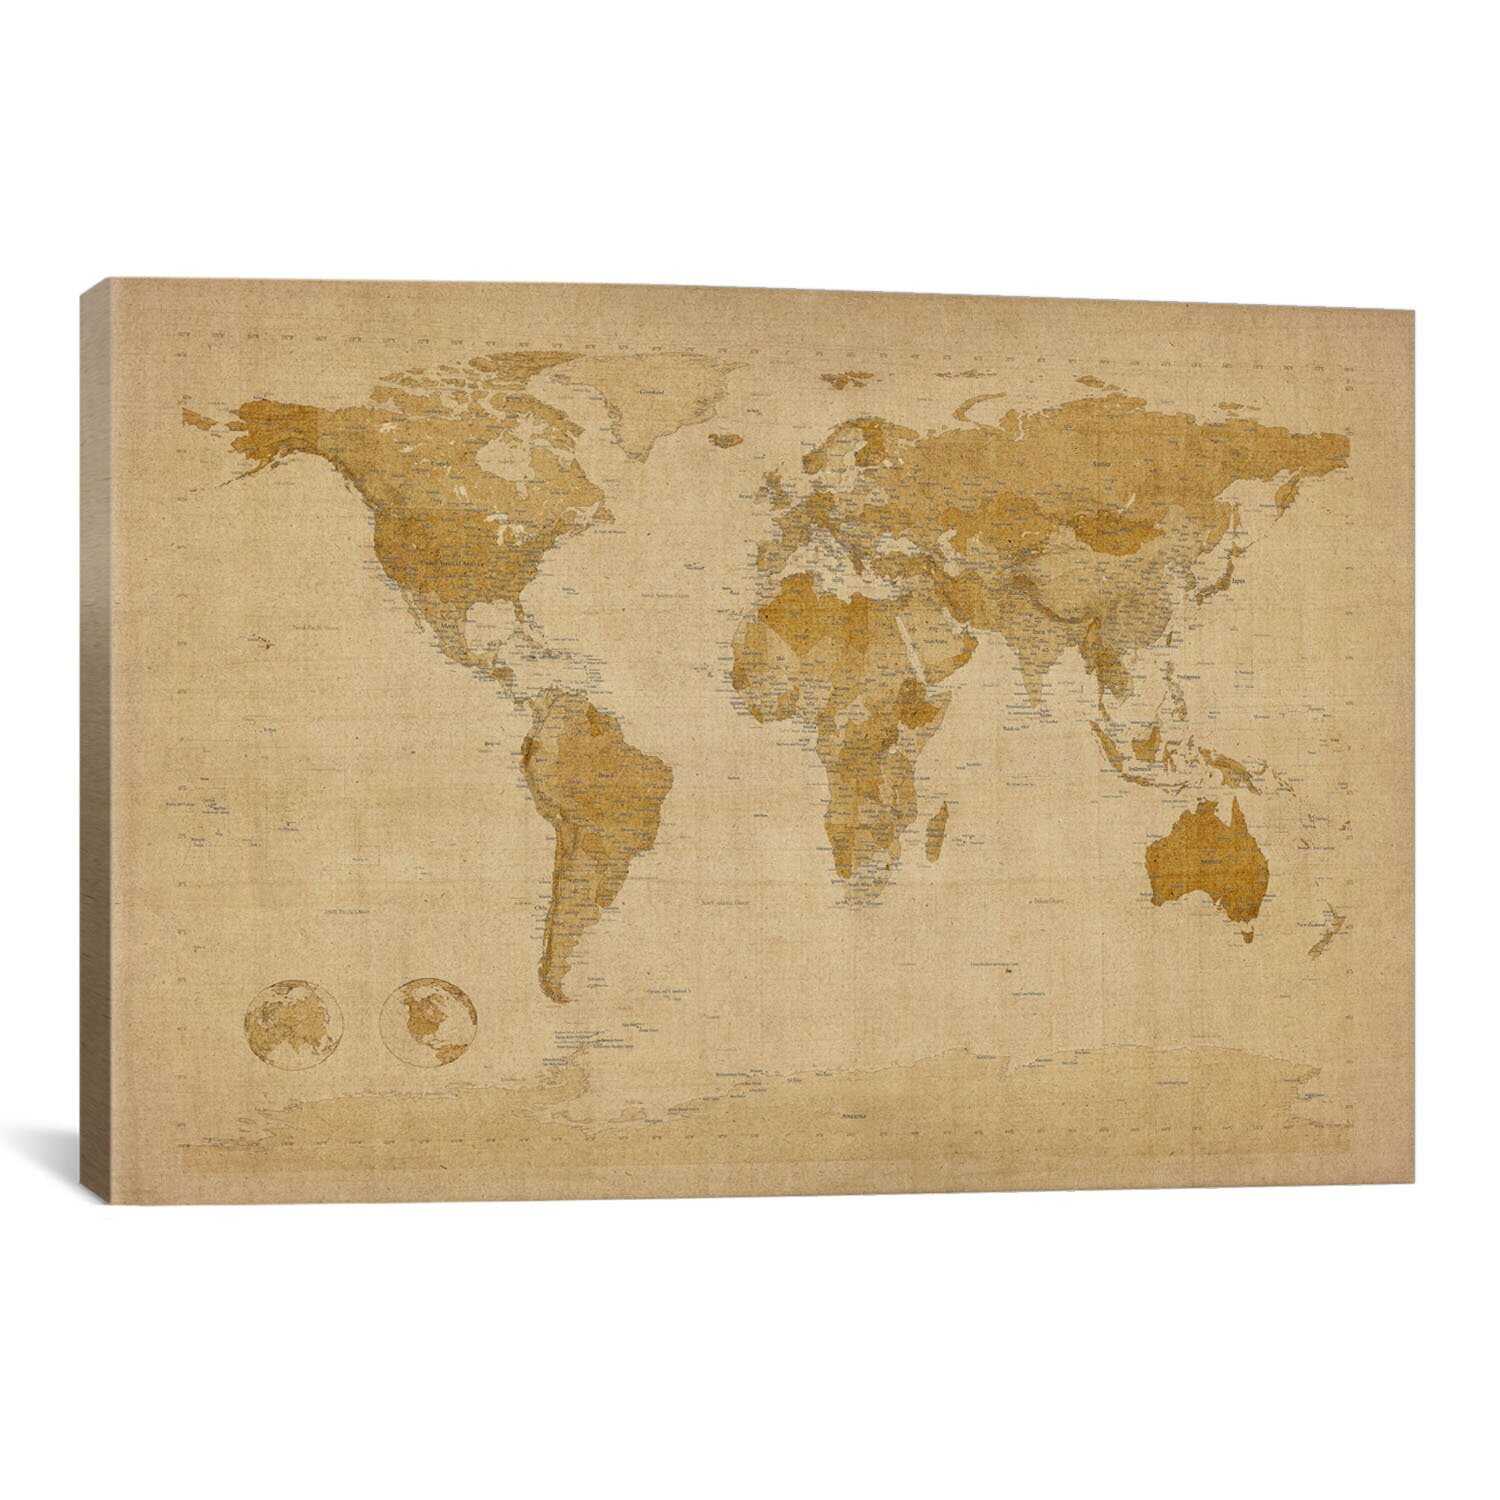 Kitchen Cabinets Lowes With Antique World Map Wall Art Icanvas 39antique World Map Ii39 By Michael Tompsett Graphic